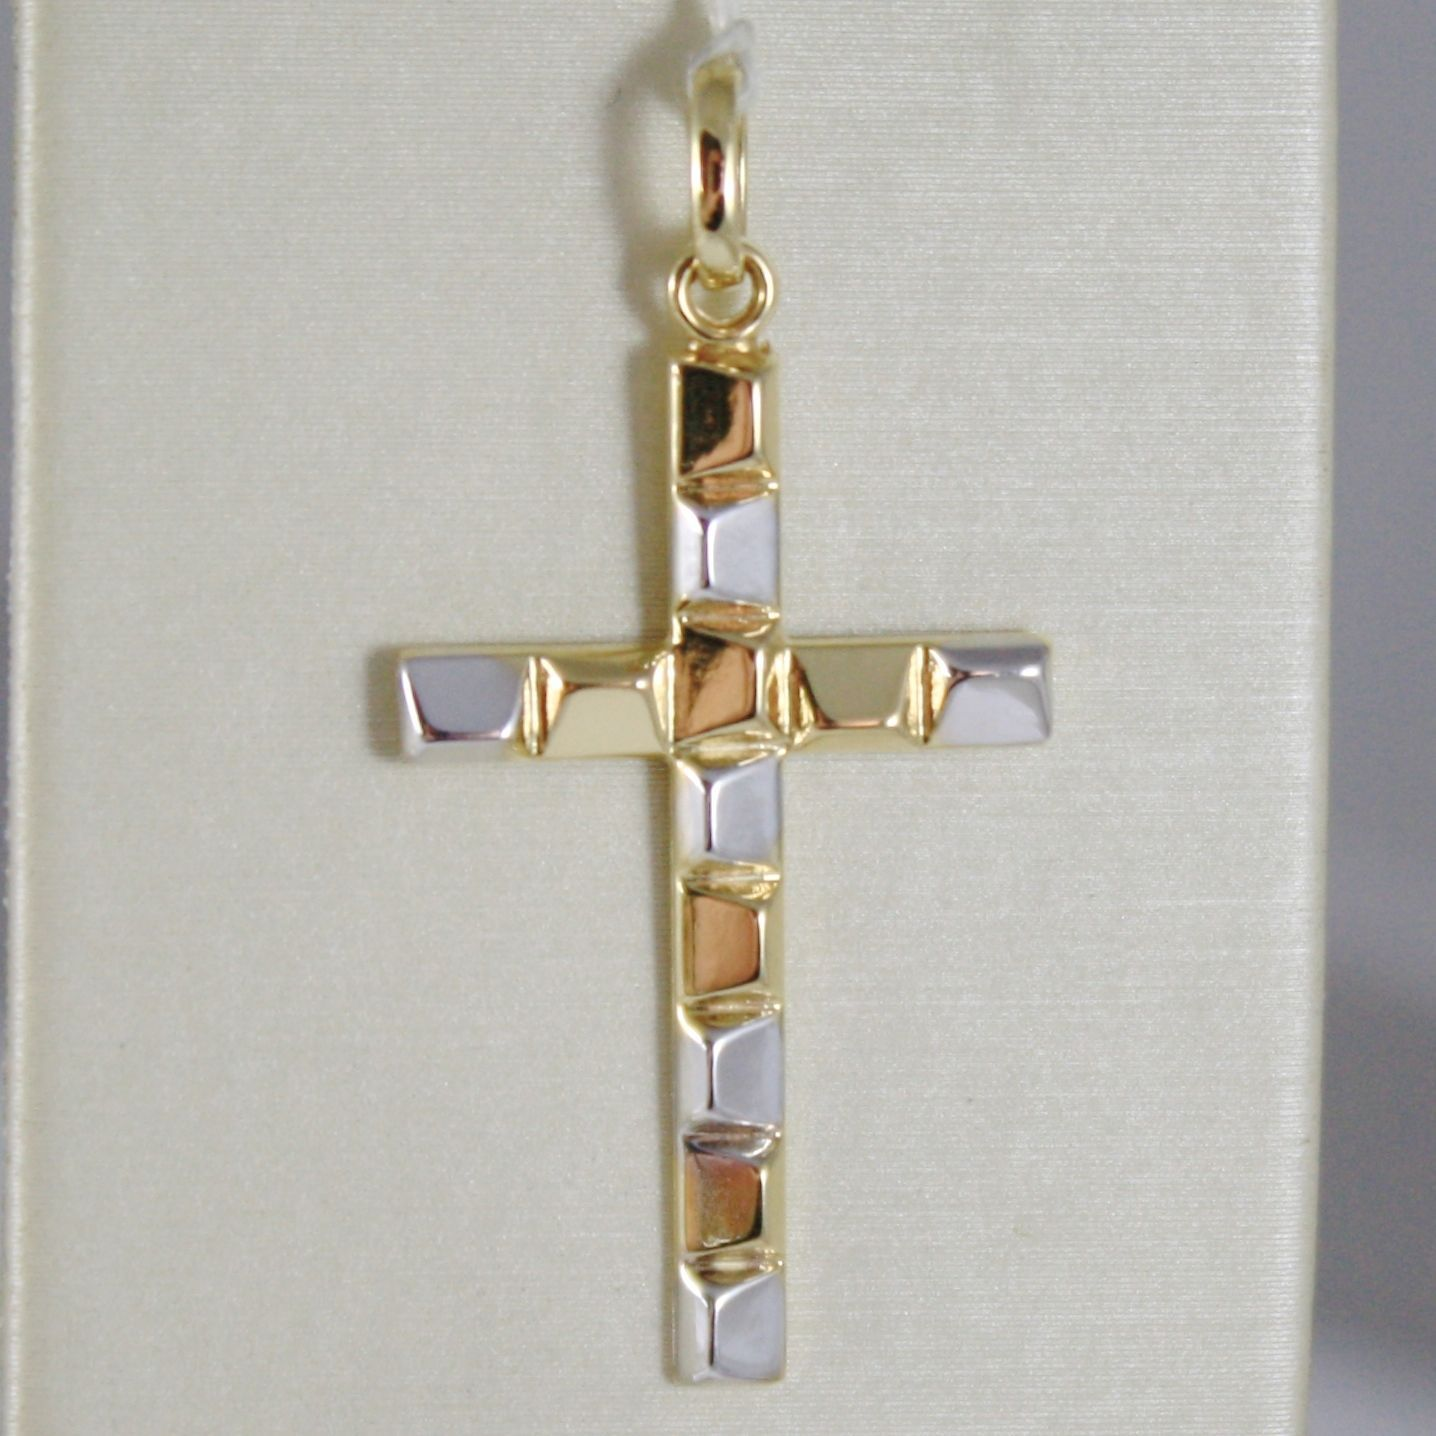 CROSS PENDANT YELLOW GOLD WHITE 750 18K, ALTERNATING, LUCIDA, MADE IN ITALY